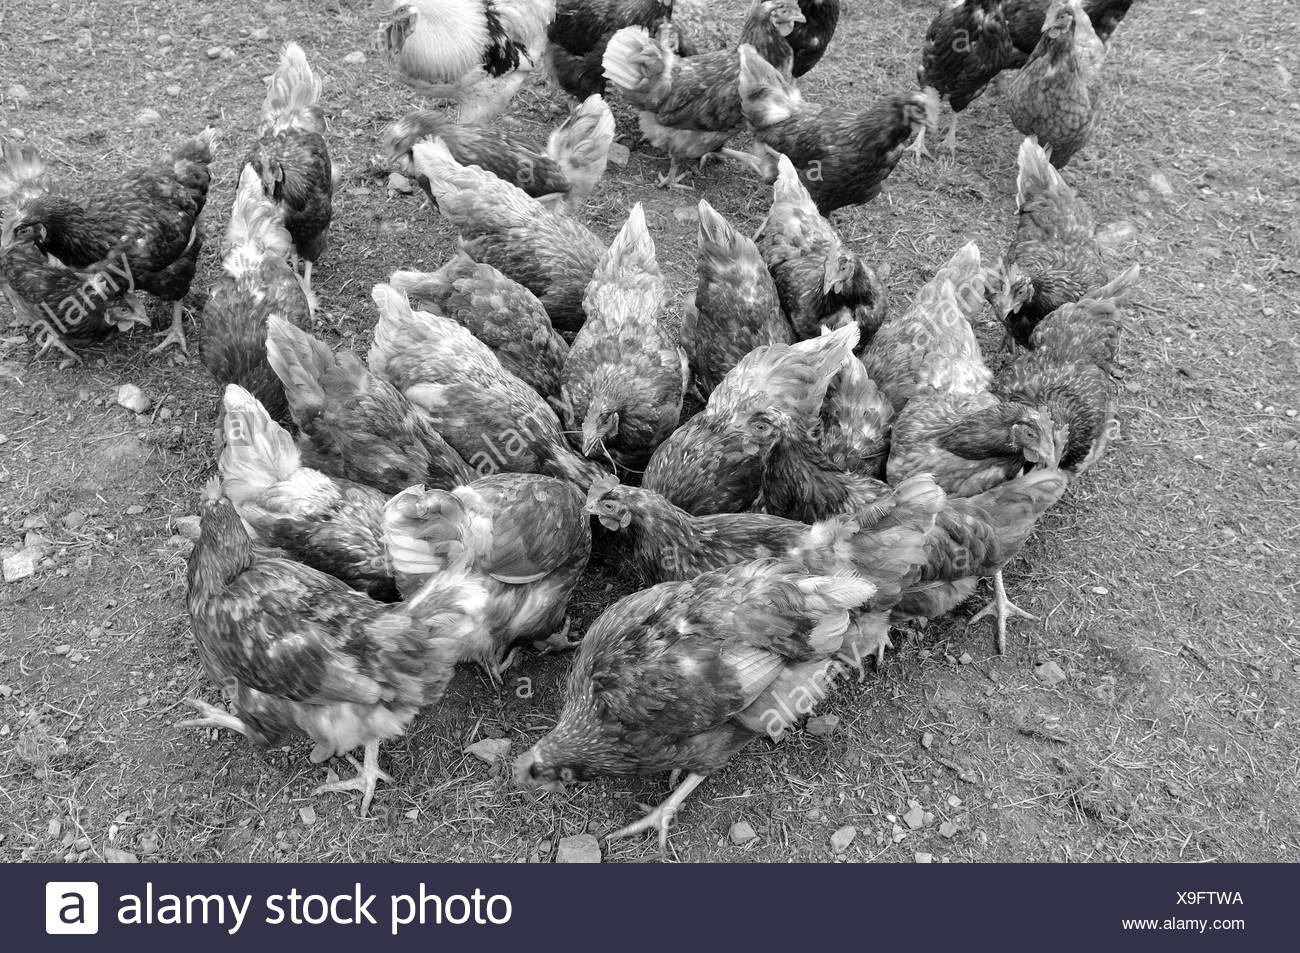 Chicken - the daily struggle for food in - Stock Image